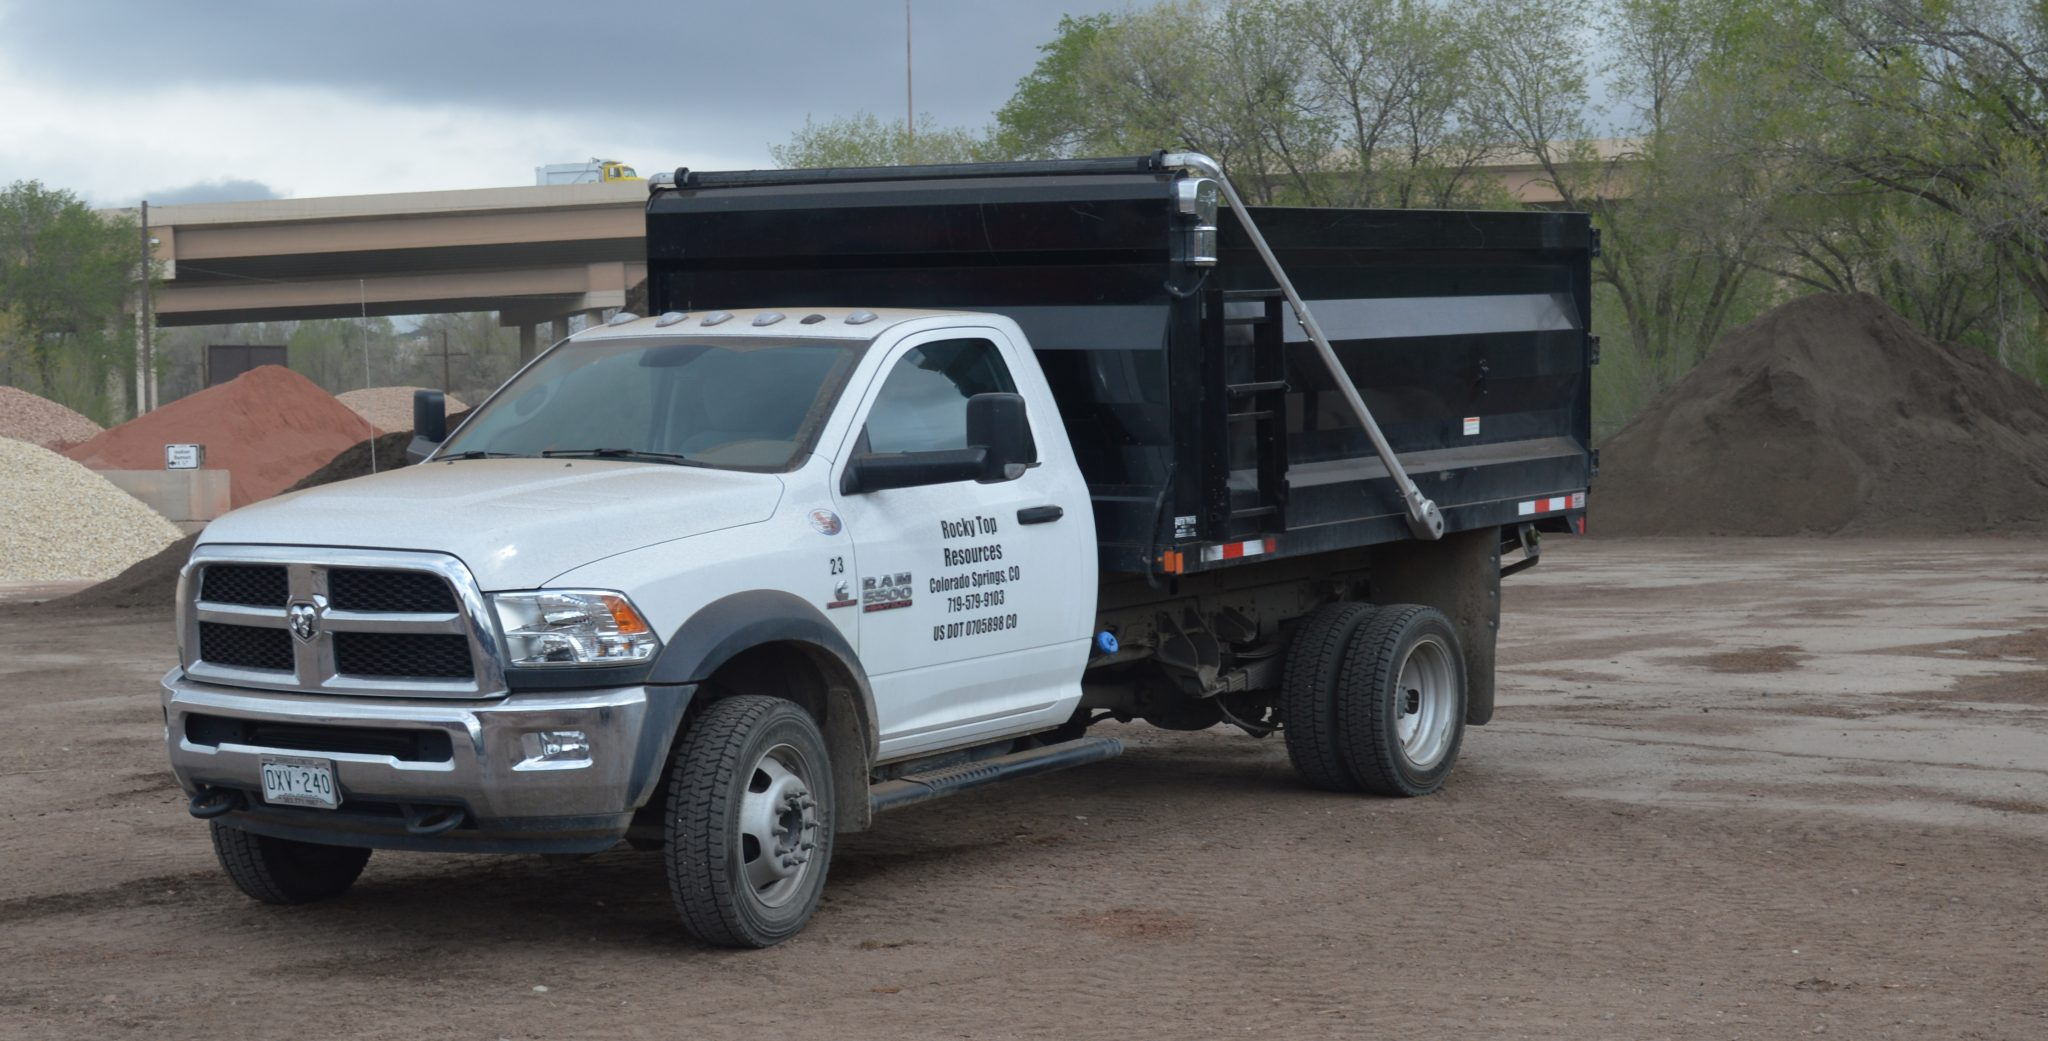 Your Natural Resource For A Colorado Landscape Our Services In Addition To Our Great Products We Offer Several Services To Help You And The Community Delivery Of Landscape Materials Recycling Of Your Yard Waste A Community Saturday Residential